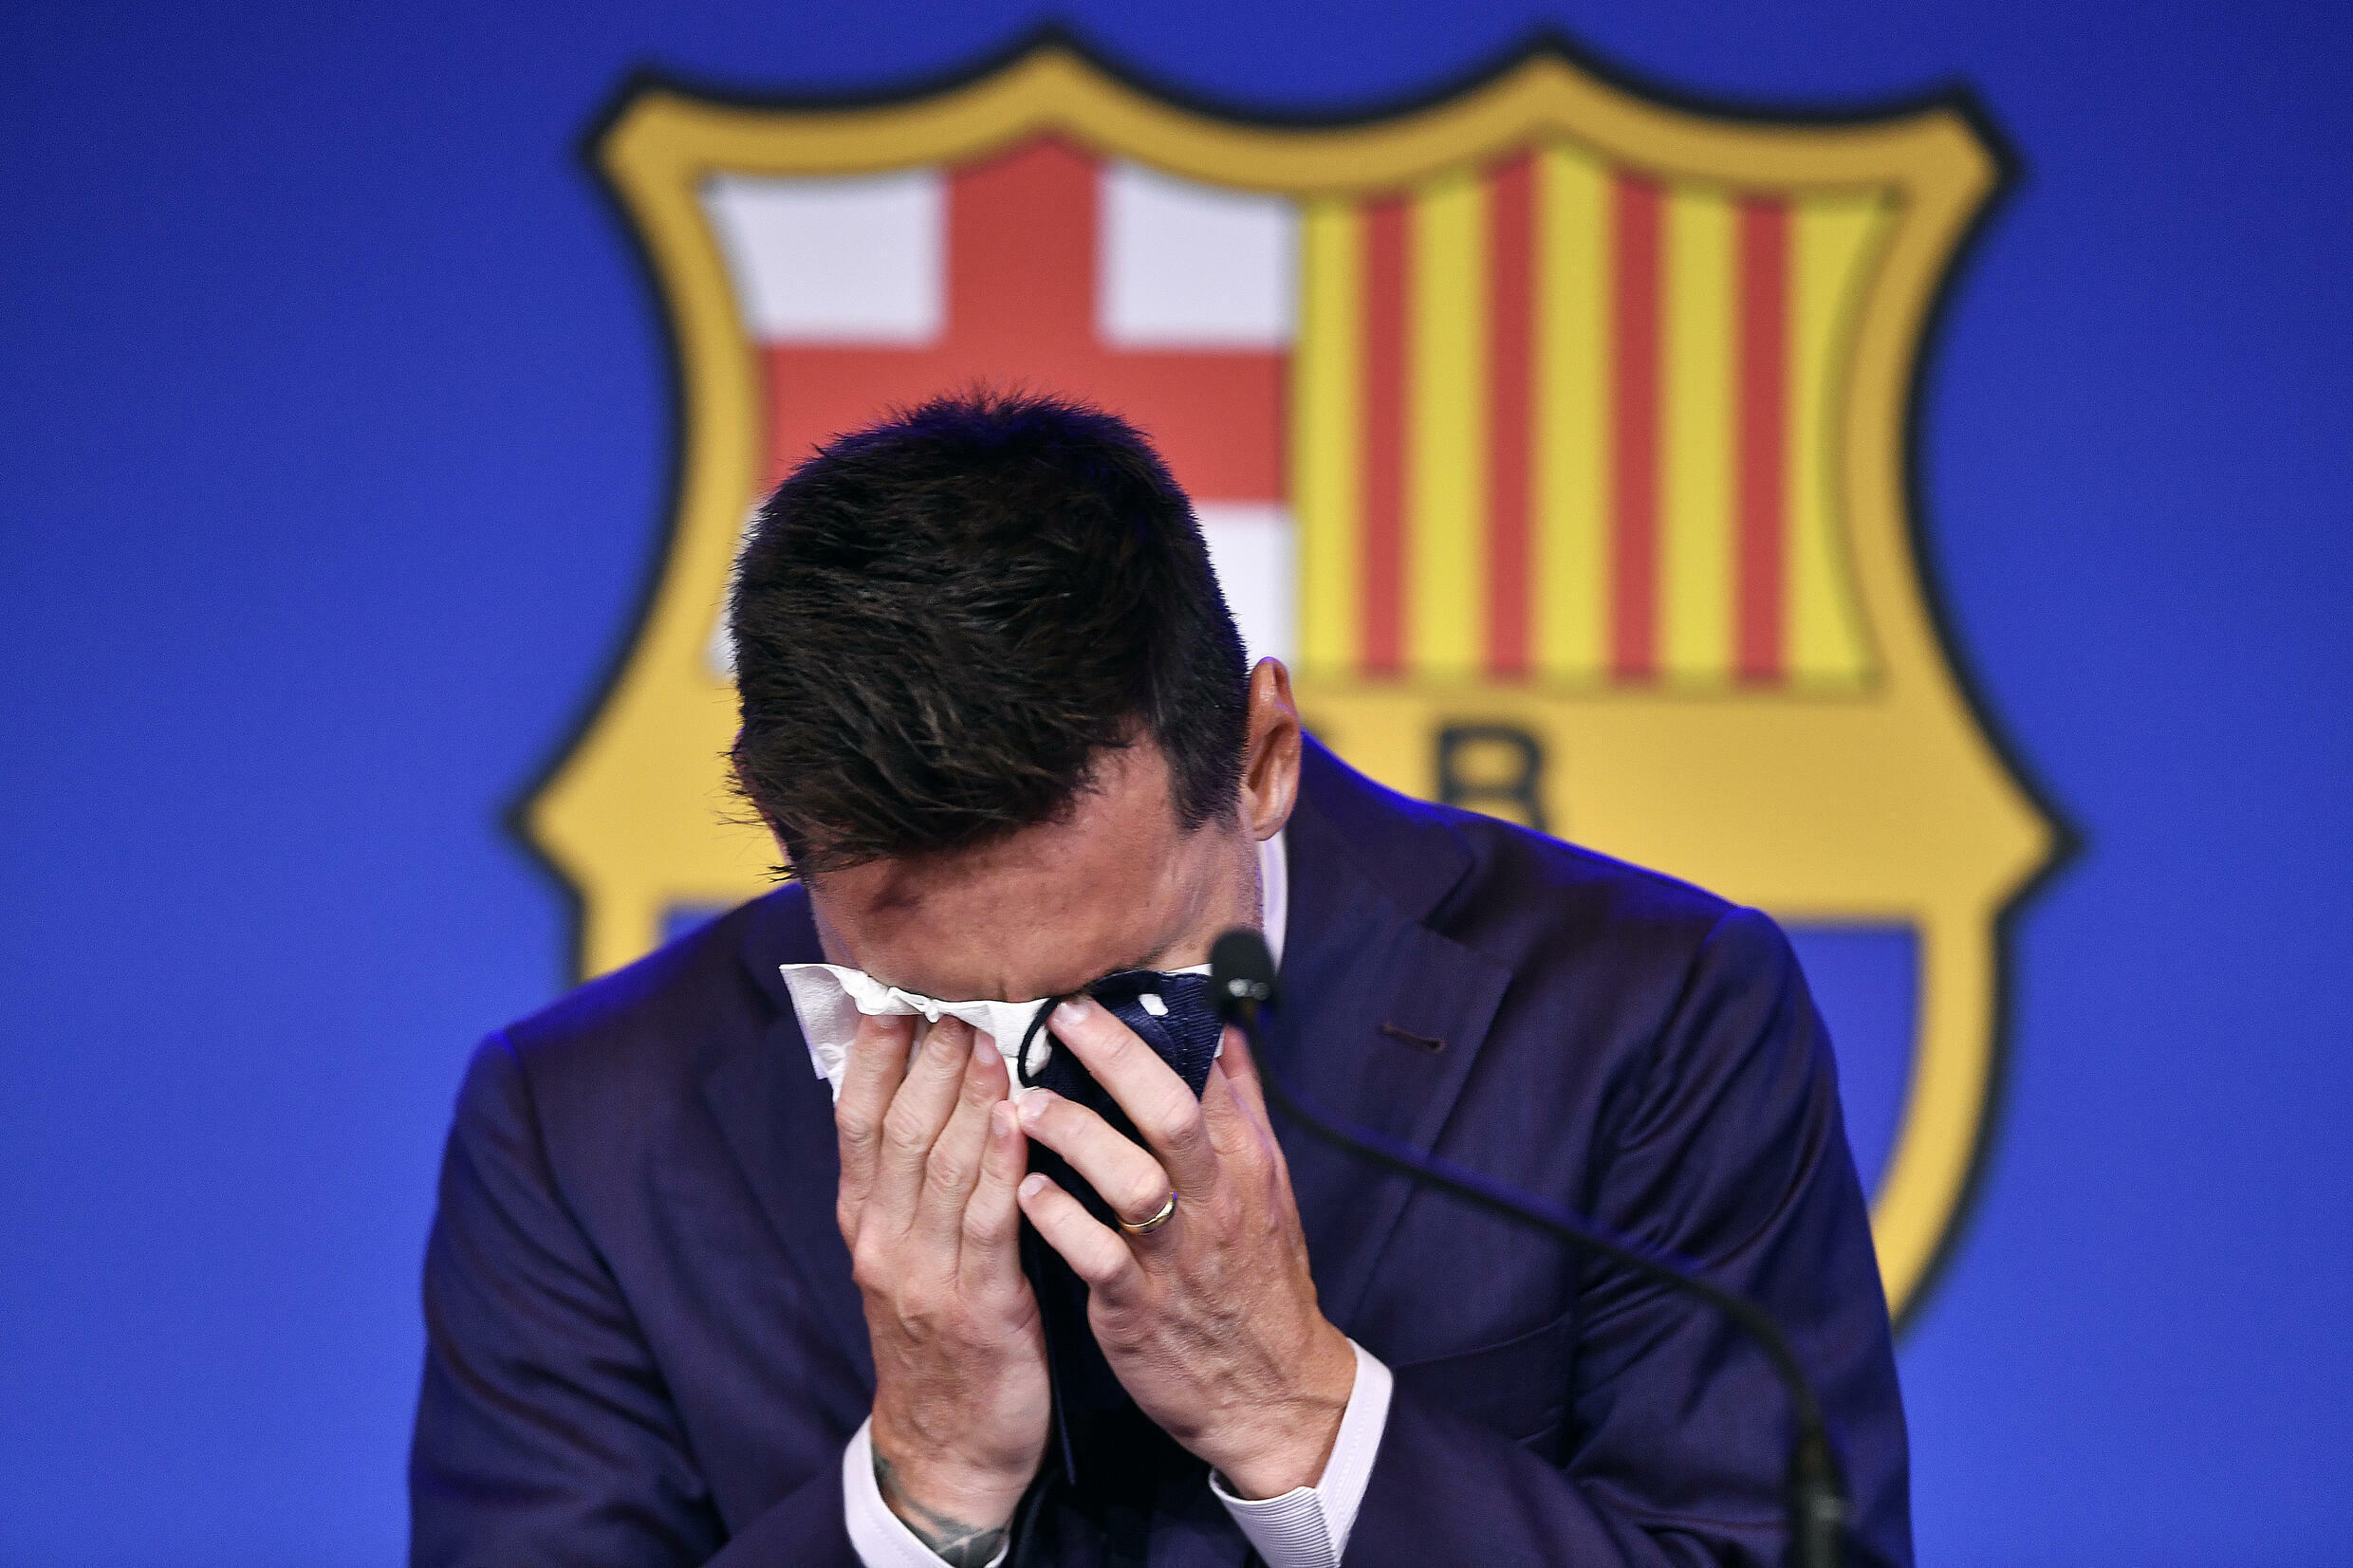 A emotional Messi struggles to compose himself before addressing reporters on his departure from Barcelona after 17 years playing for his only club